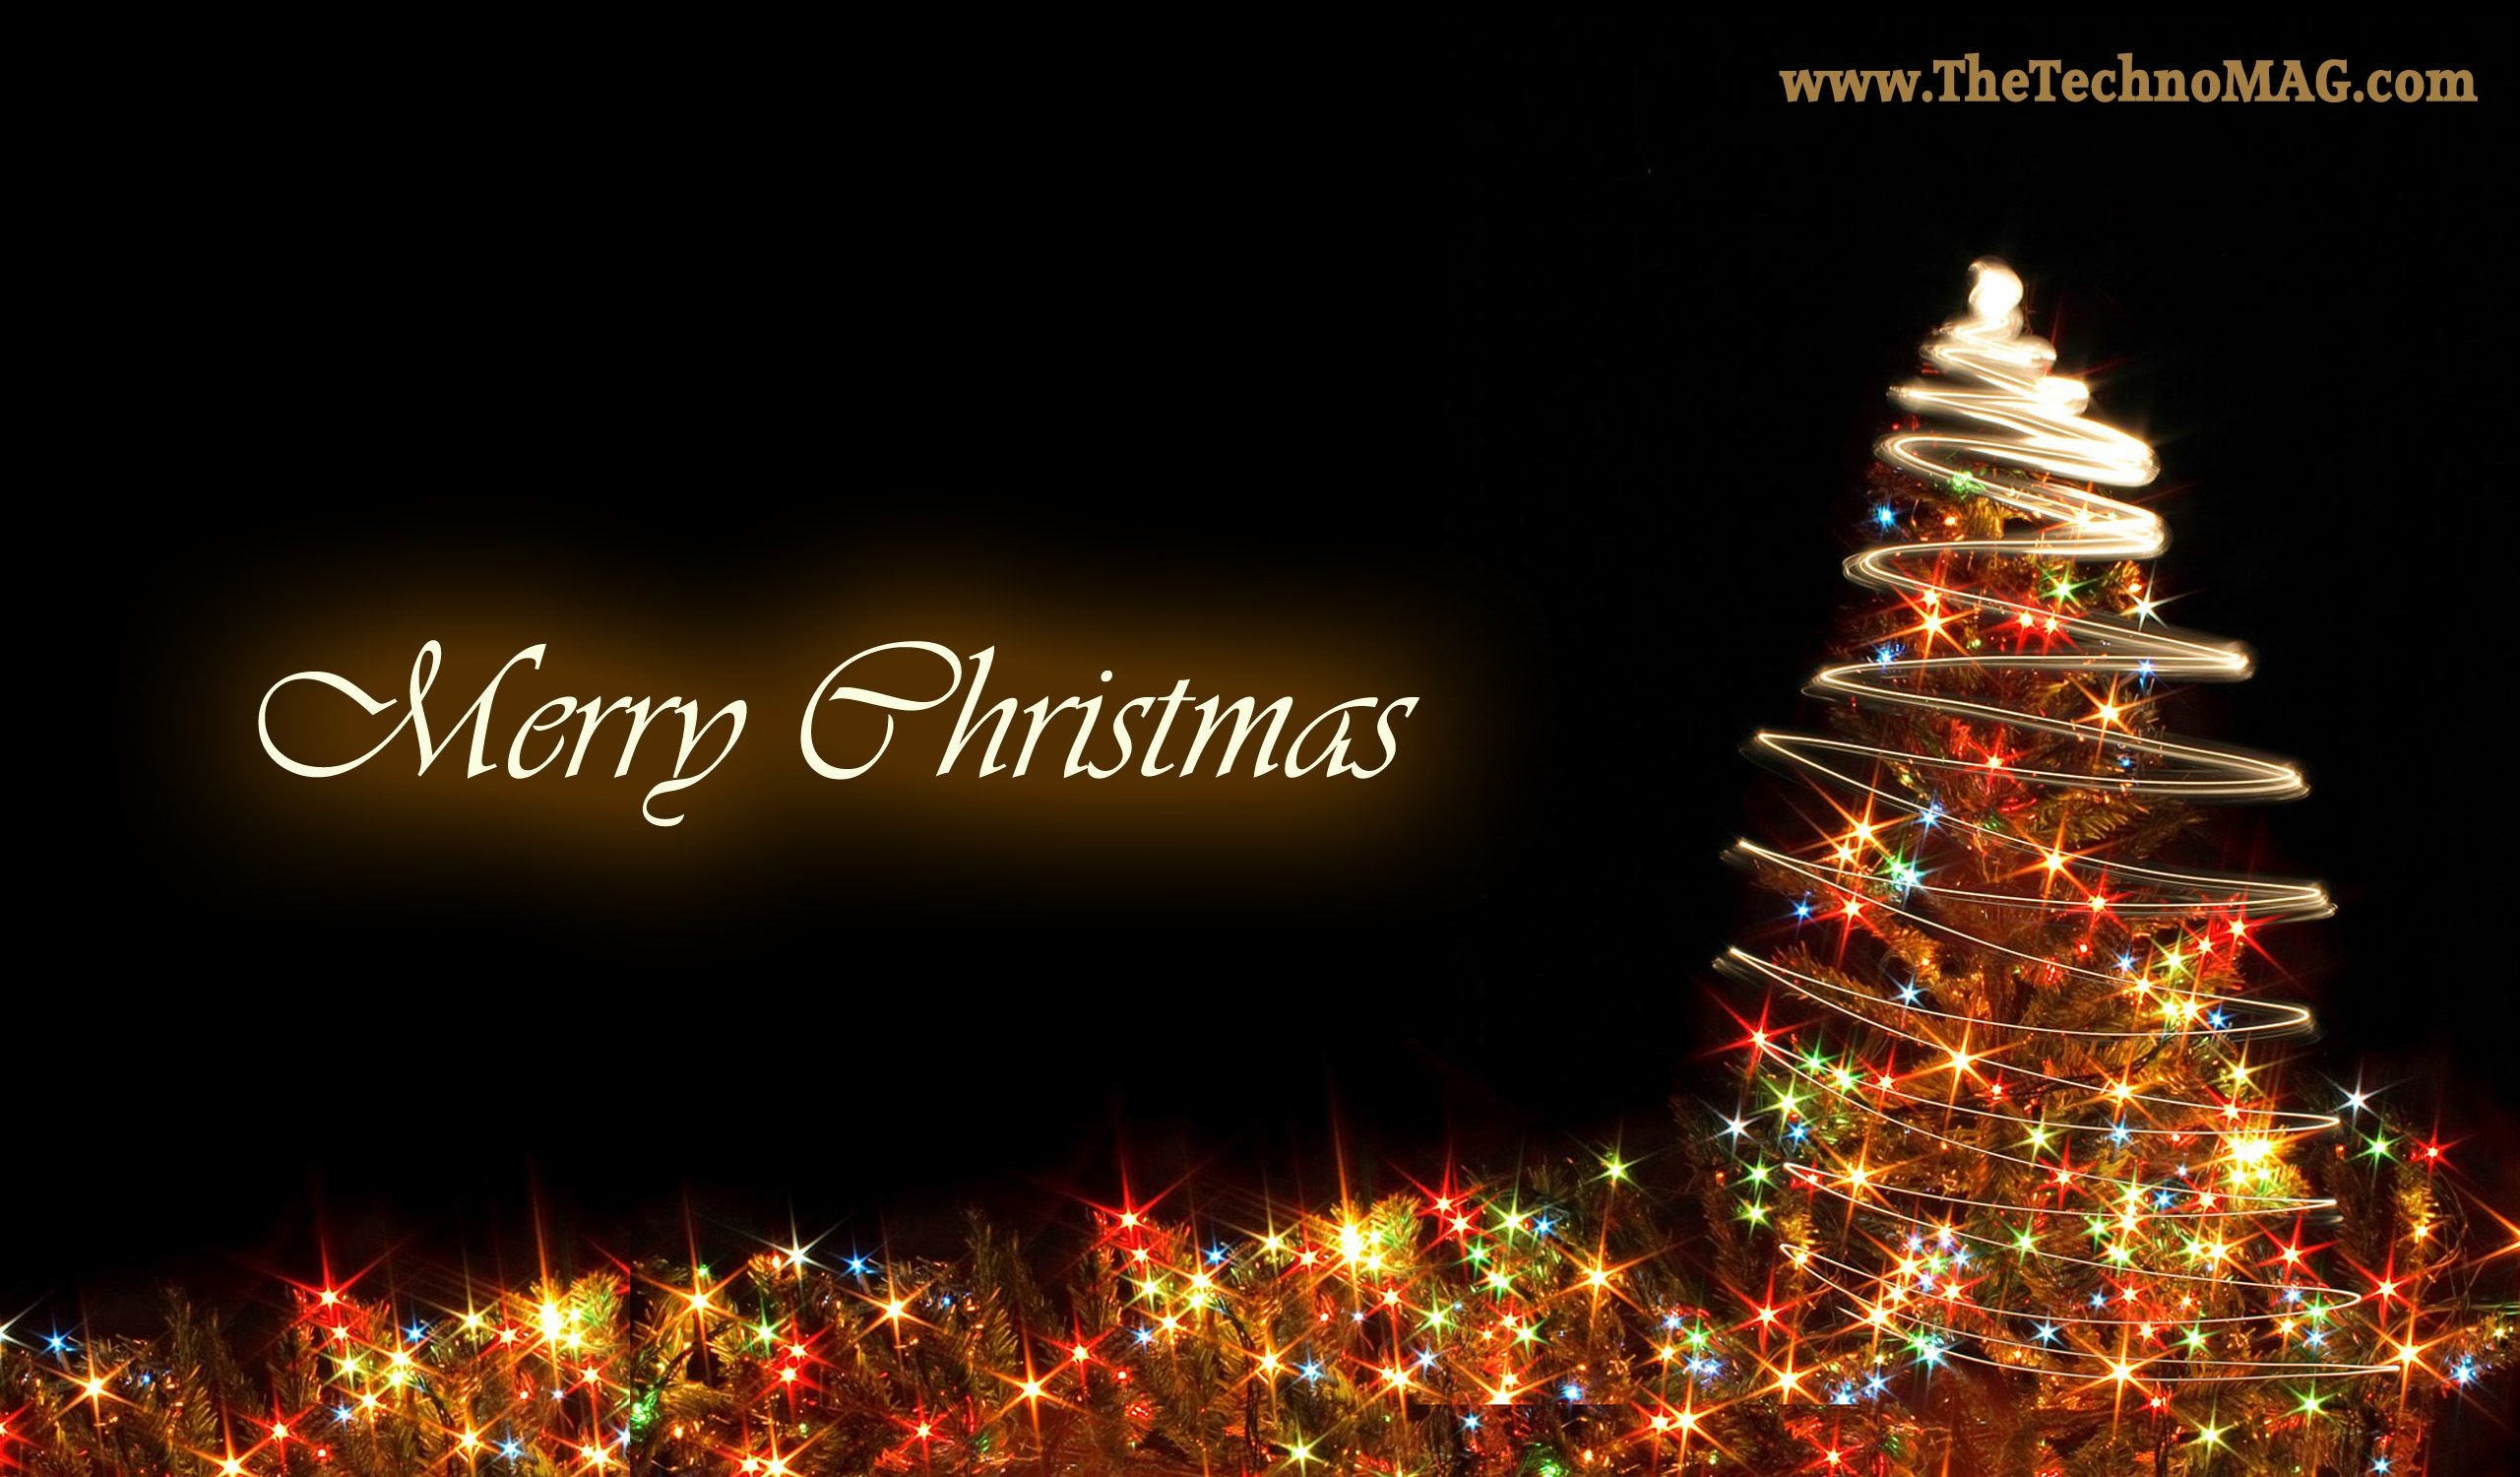 Christmas PC Wallpaper (54+ images)